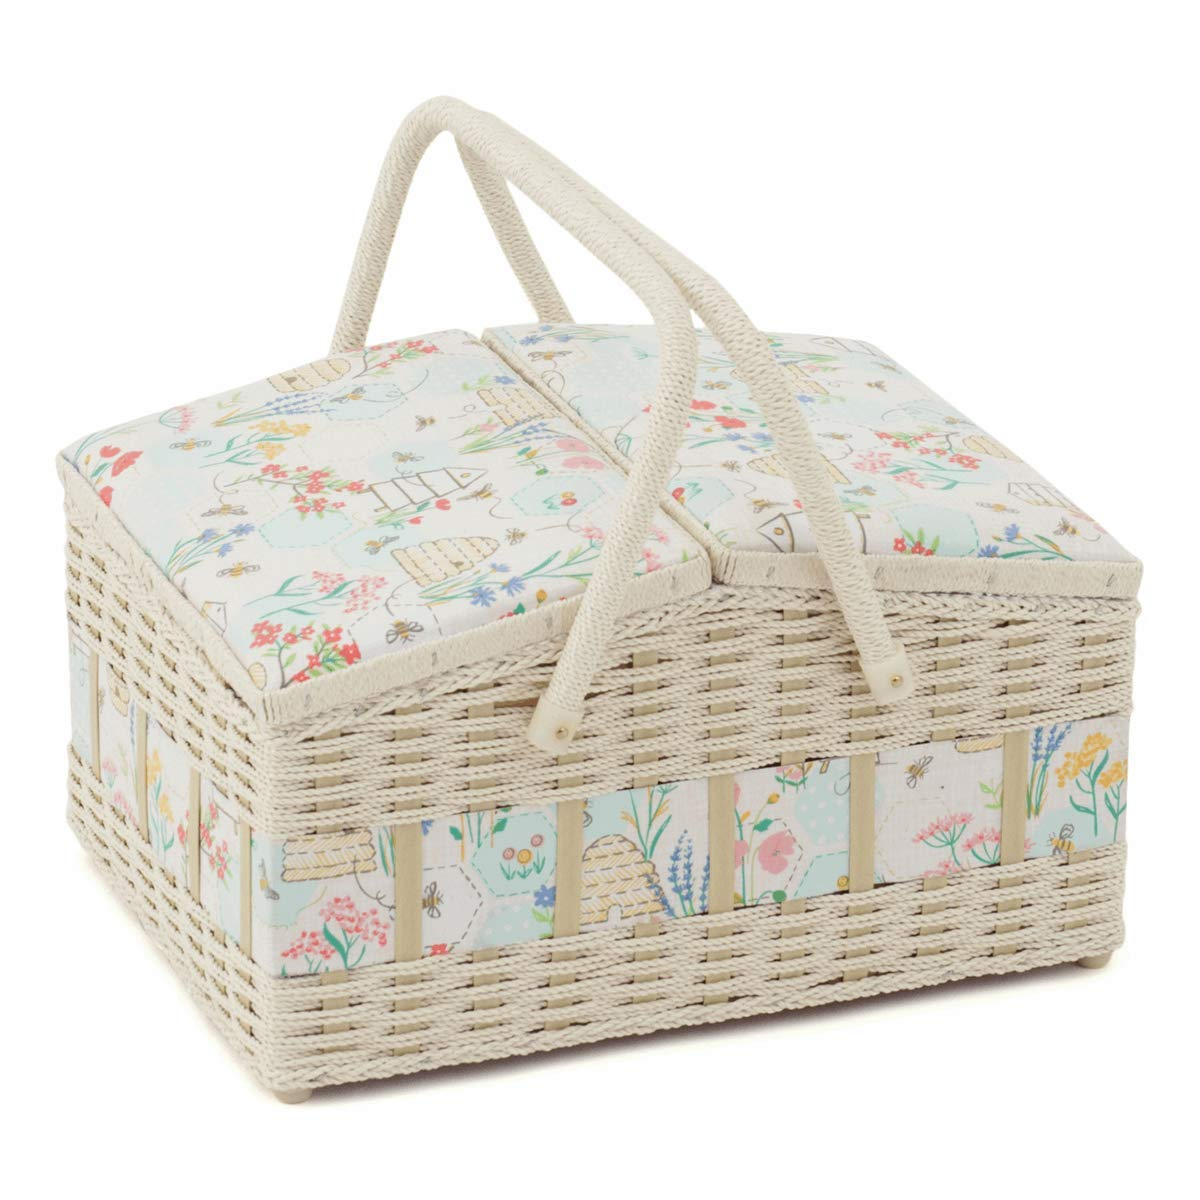 Hobby Gift Double Lid Sewing Box Sewing Bee Design - Box Size: (D/W/H): 26 x 35 x 20cm by Hobby Gift